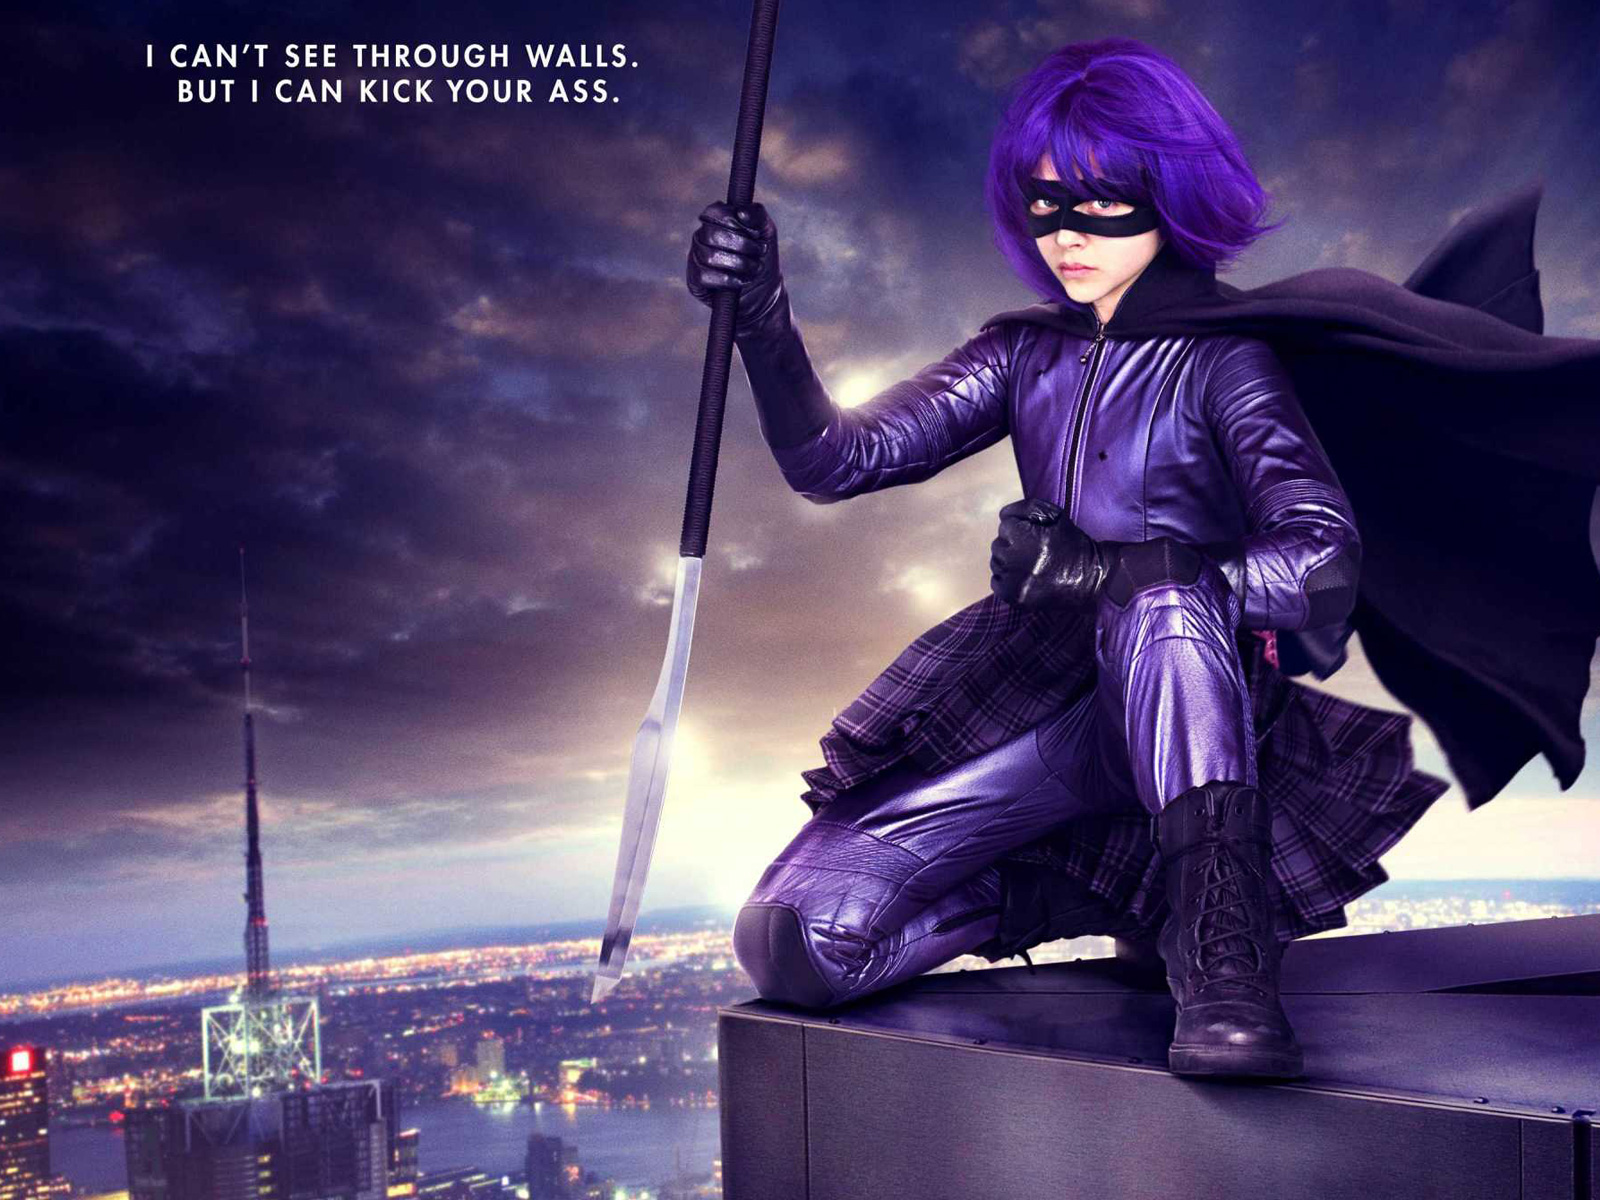 Hit Girl Kick Ass Movie Wallpapers HD Wallpapers 1600x1200